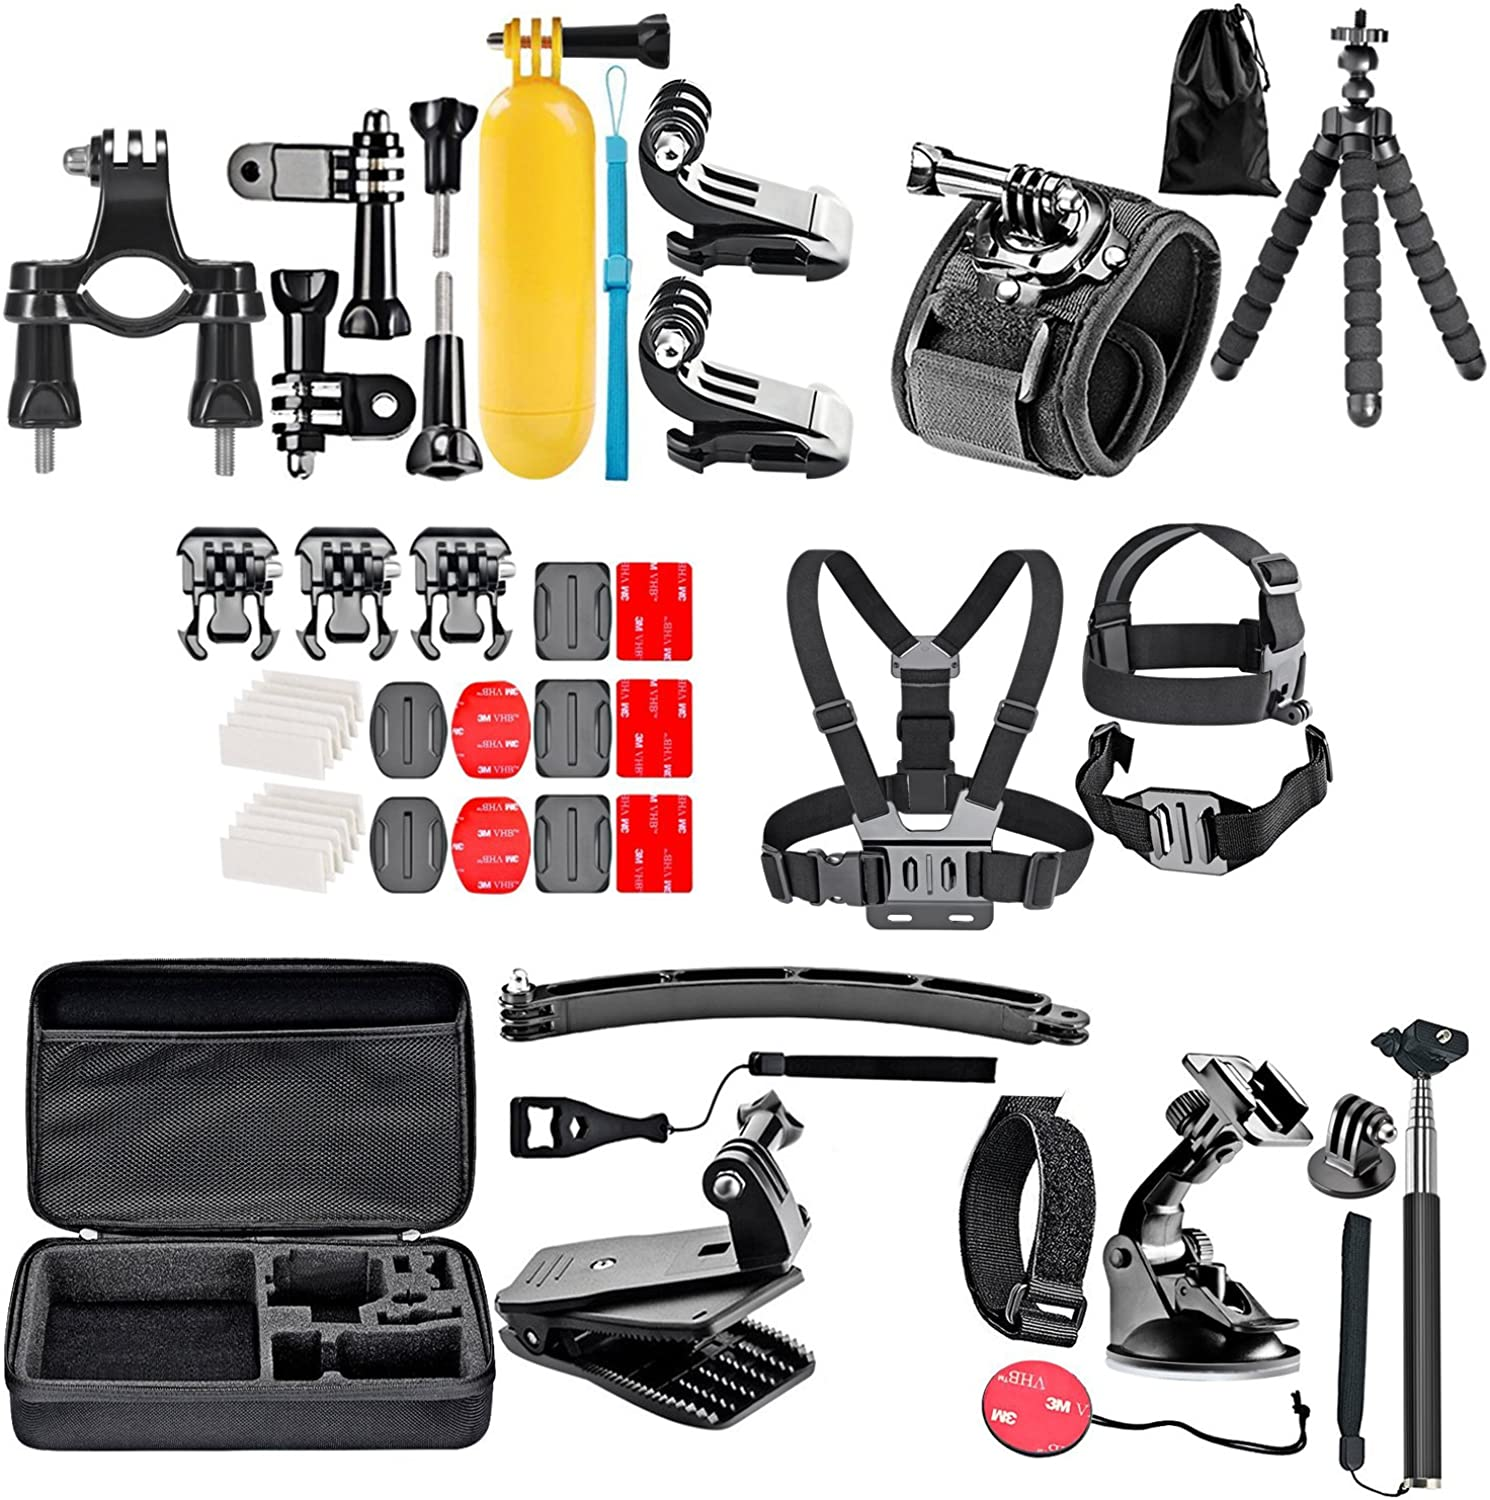 Gopro Everything You Need Package for GoPro Hero4, Hero4 Session, Hero+, Hero, Hero3+, Hero3, Hero2 Kit Includes  Outdoors Kit with Arm Mount & Flat Surface Mount + Head Strap + Tripod + 16GB Memory & more All in One Bundle